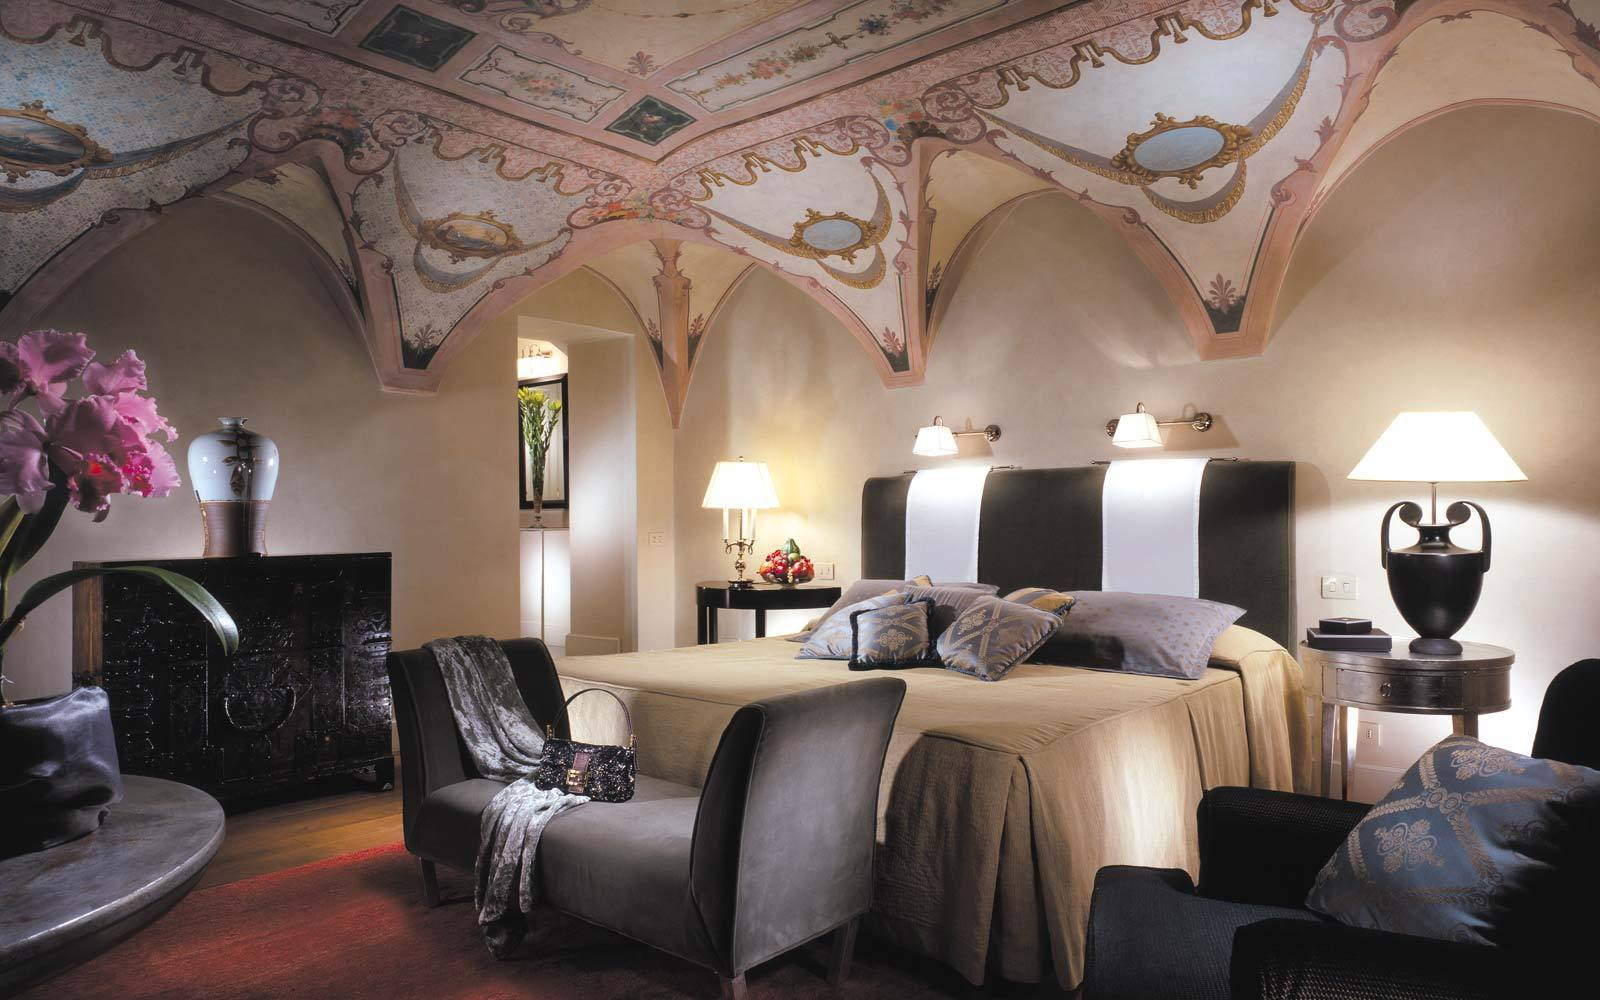 hotel stars luxury in rome suite stendhal <div class cap center t >grand hotel de